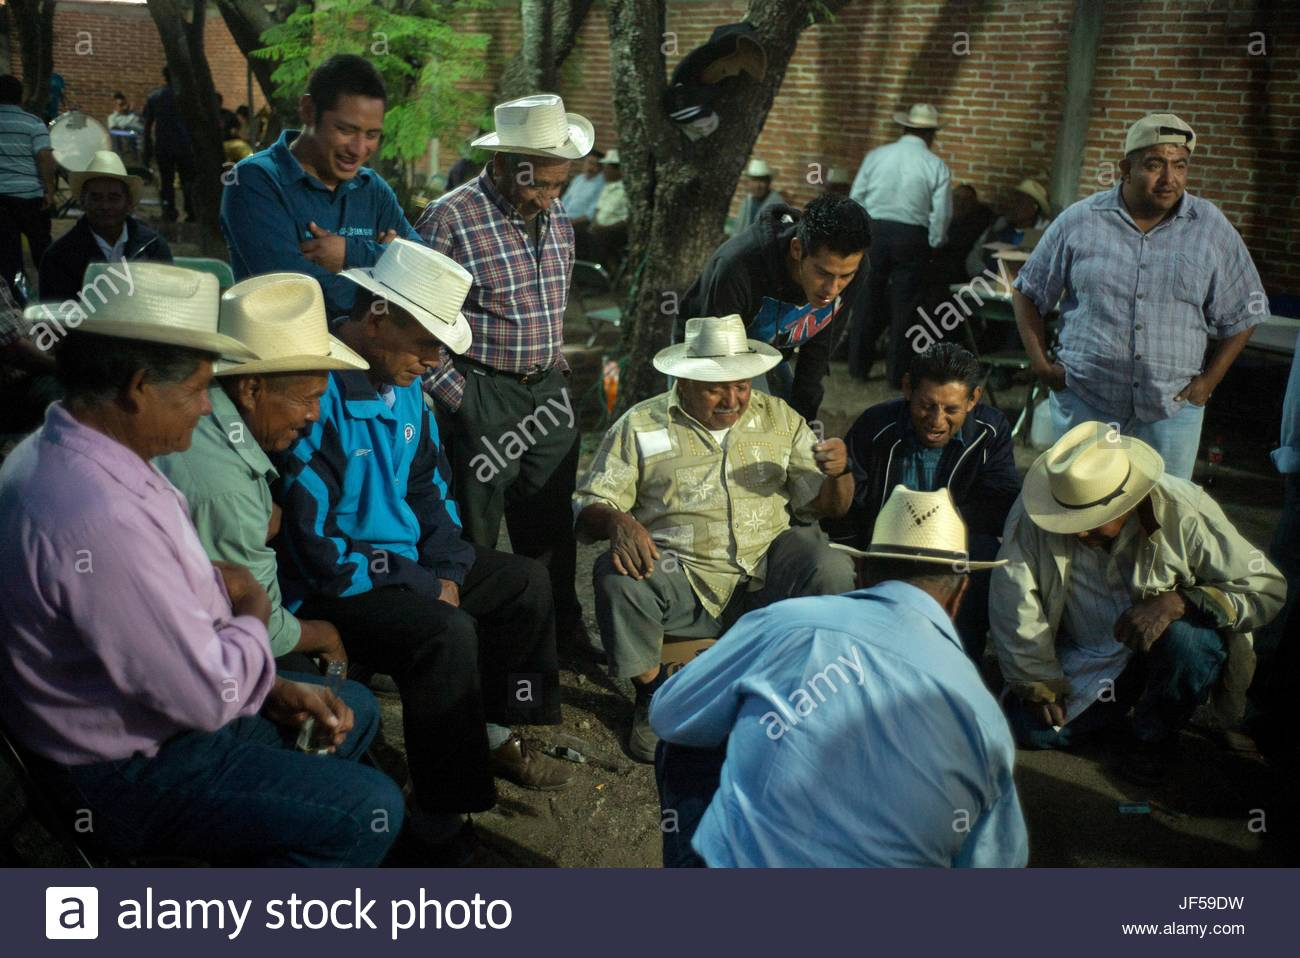 Men play dice in a cemetery during the Day of the Dead celebration. - Stock Image